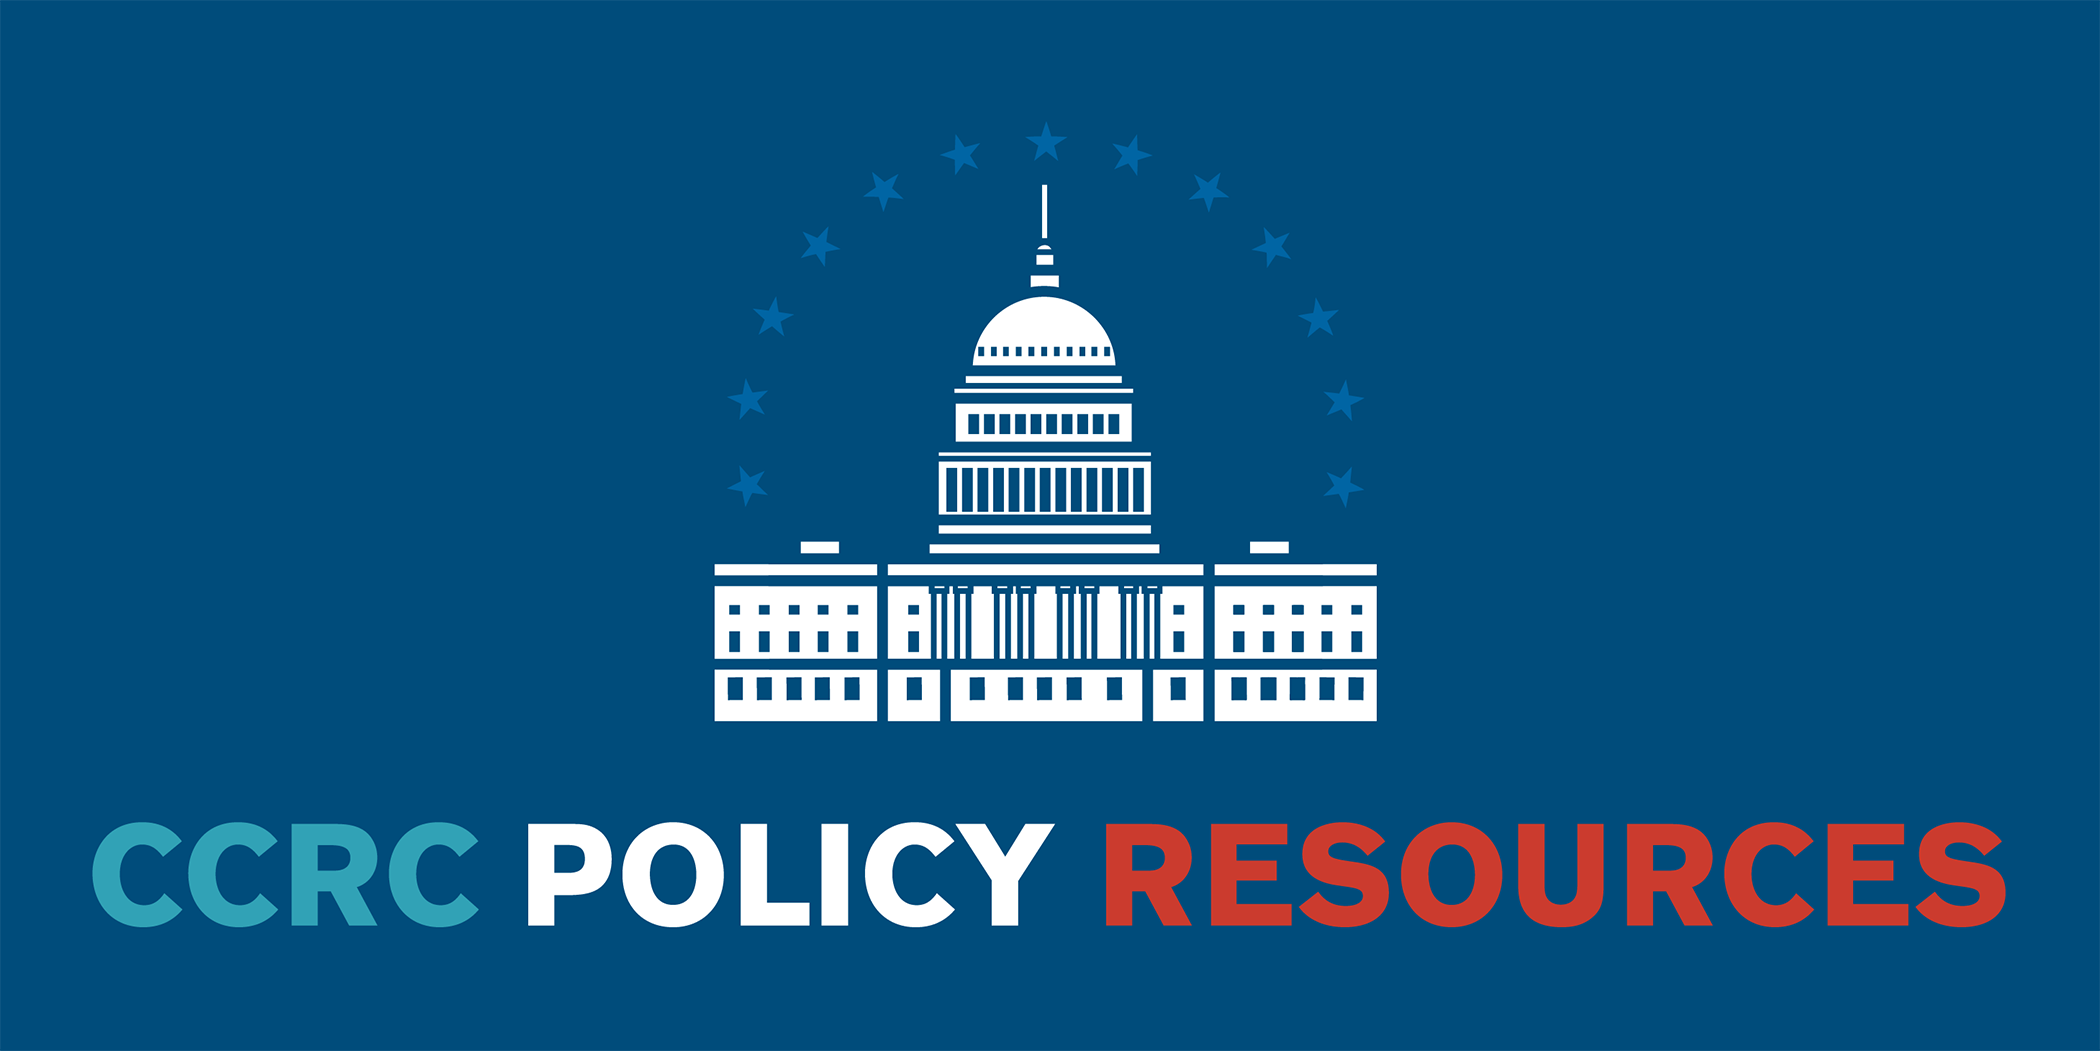 CCRC Policy Resources